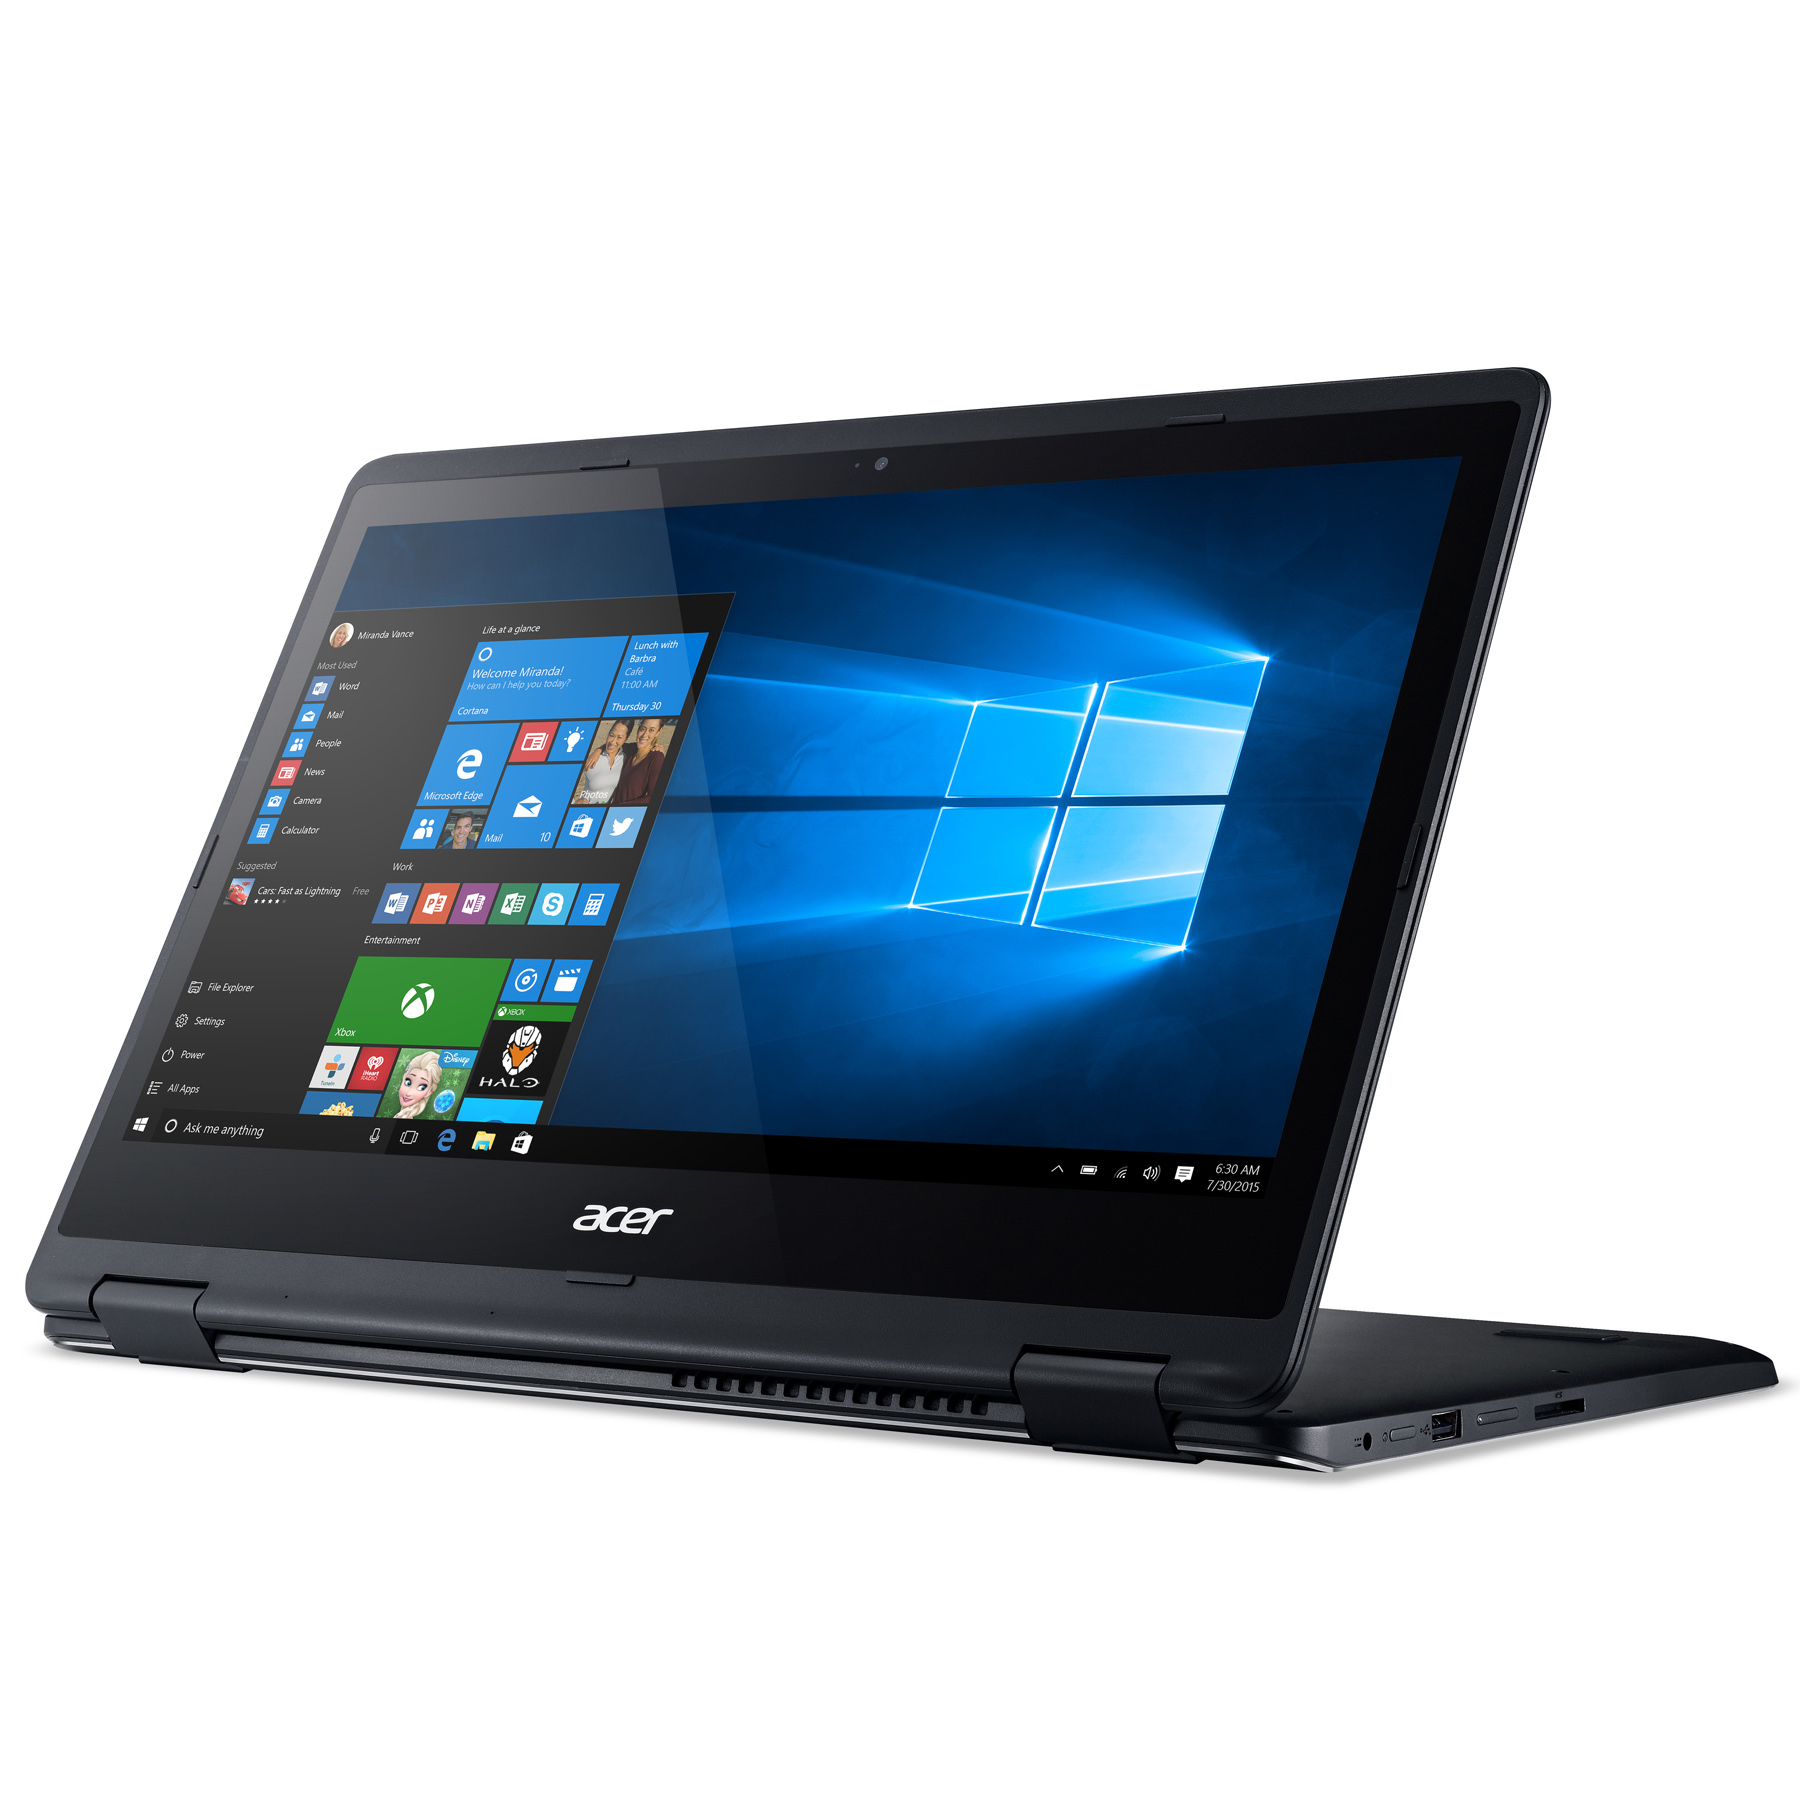 ACER TRAVELMATE 5710 INTEL EXTREME GRAPHICS DRIVERS WINDOWS XP